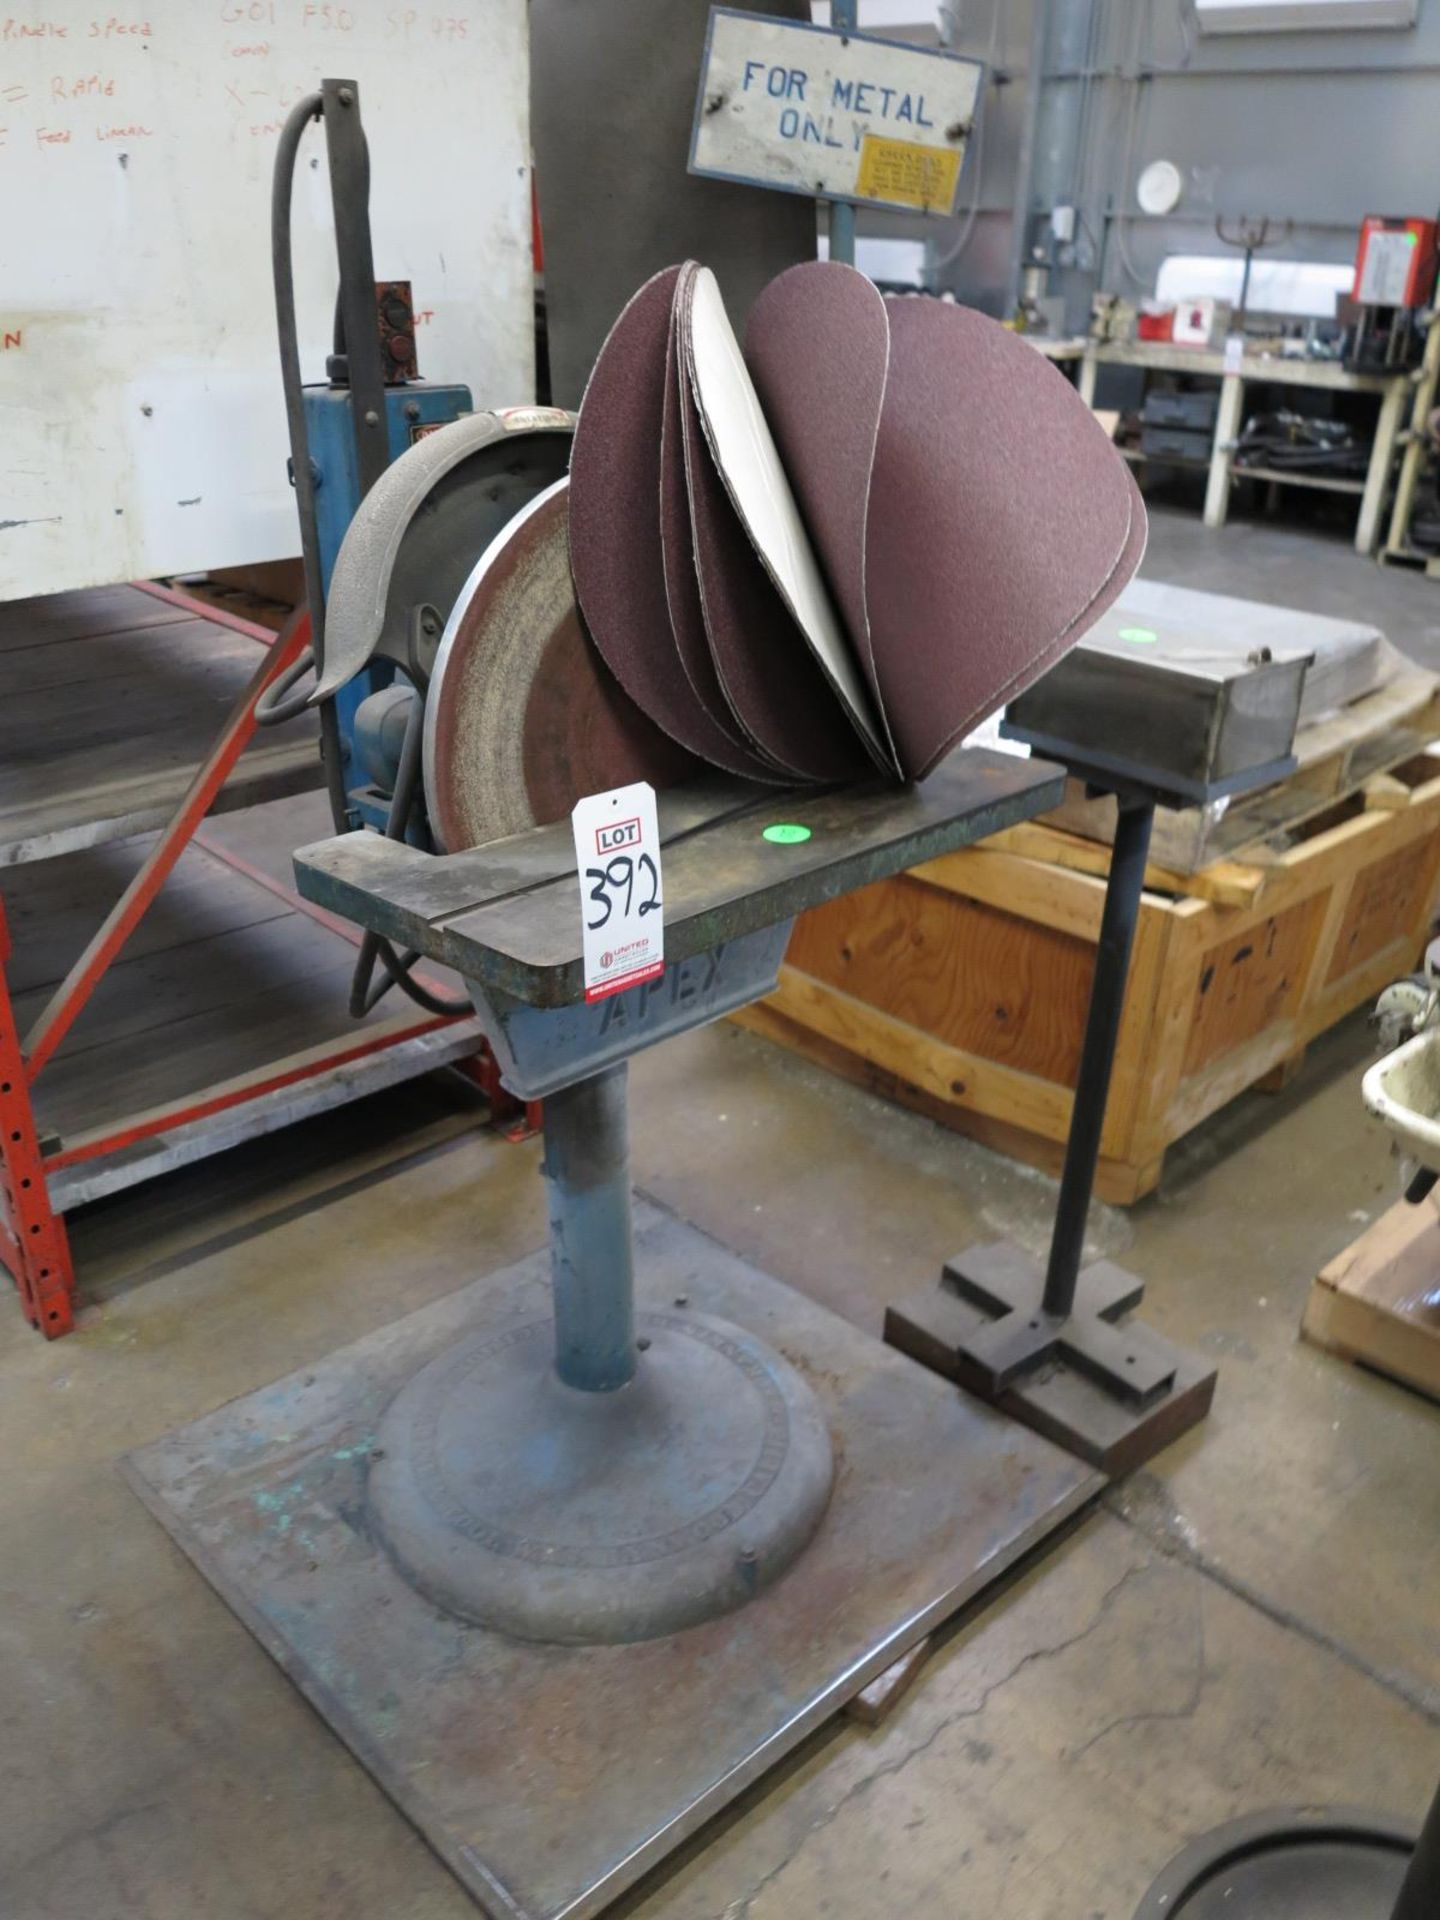 """Lot 392 - RANKIN BROS 20"""" DISC GRINDER, W/ ADHESIVE-BACKED GRINDING DISCS"""